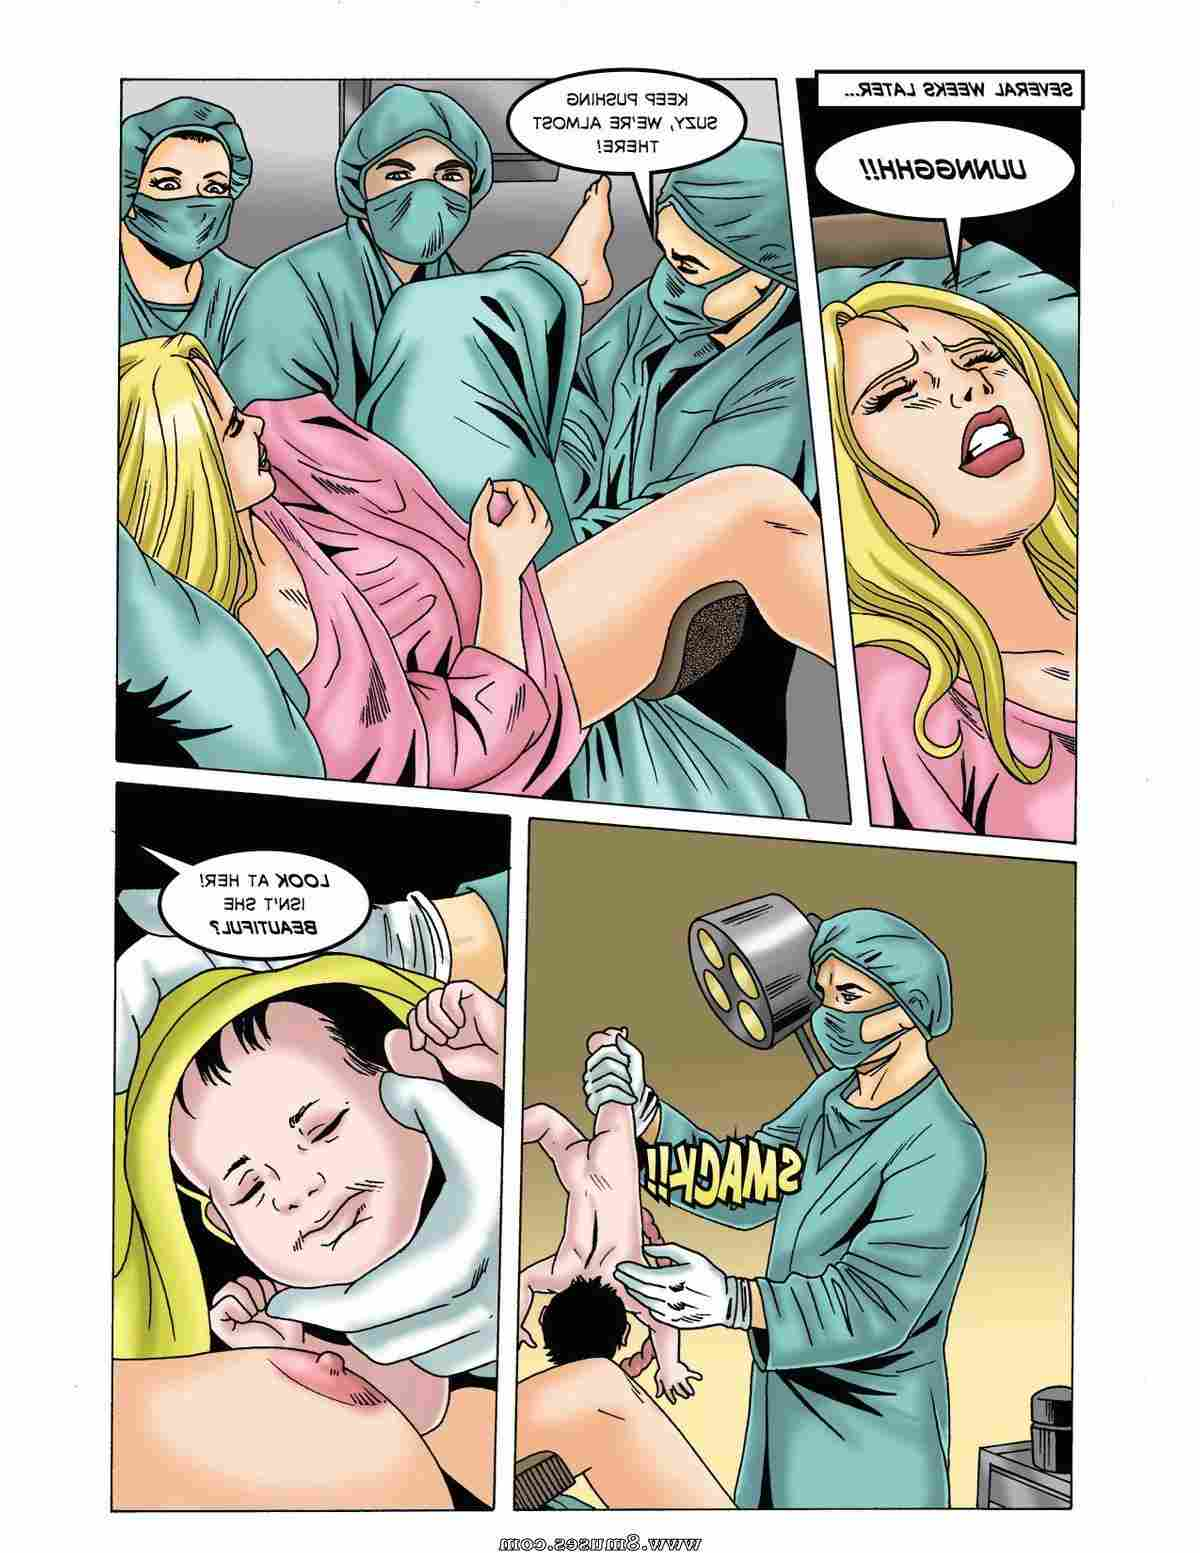 DreamTales-Comics/Crybaby-Marilyn Crybaby_Marilyn__8muses_-_Sex_and_Porn_Comics_37.jpg